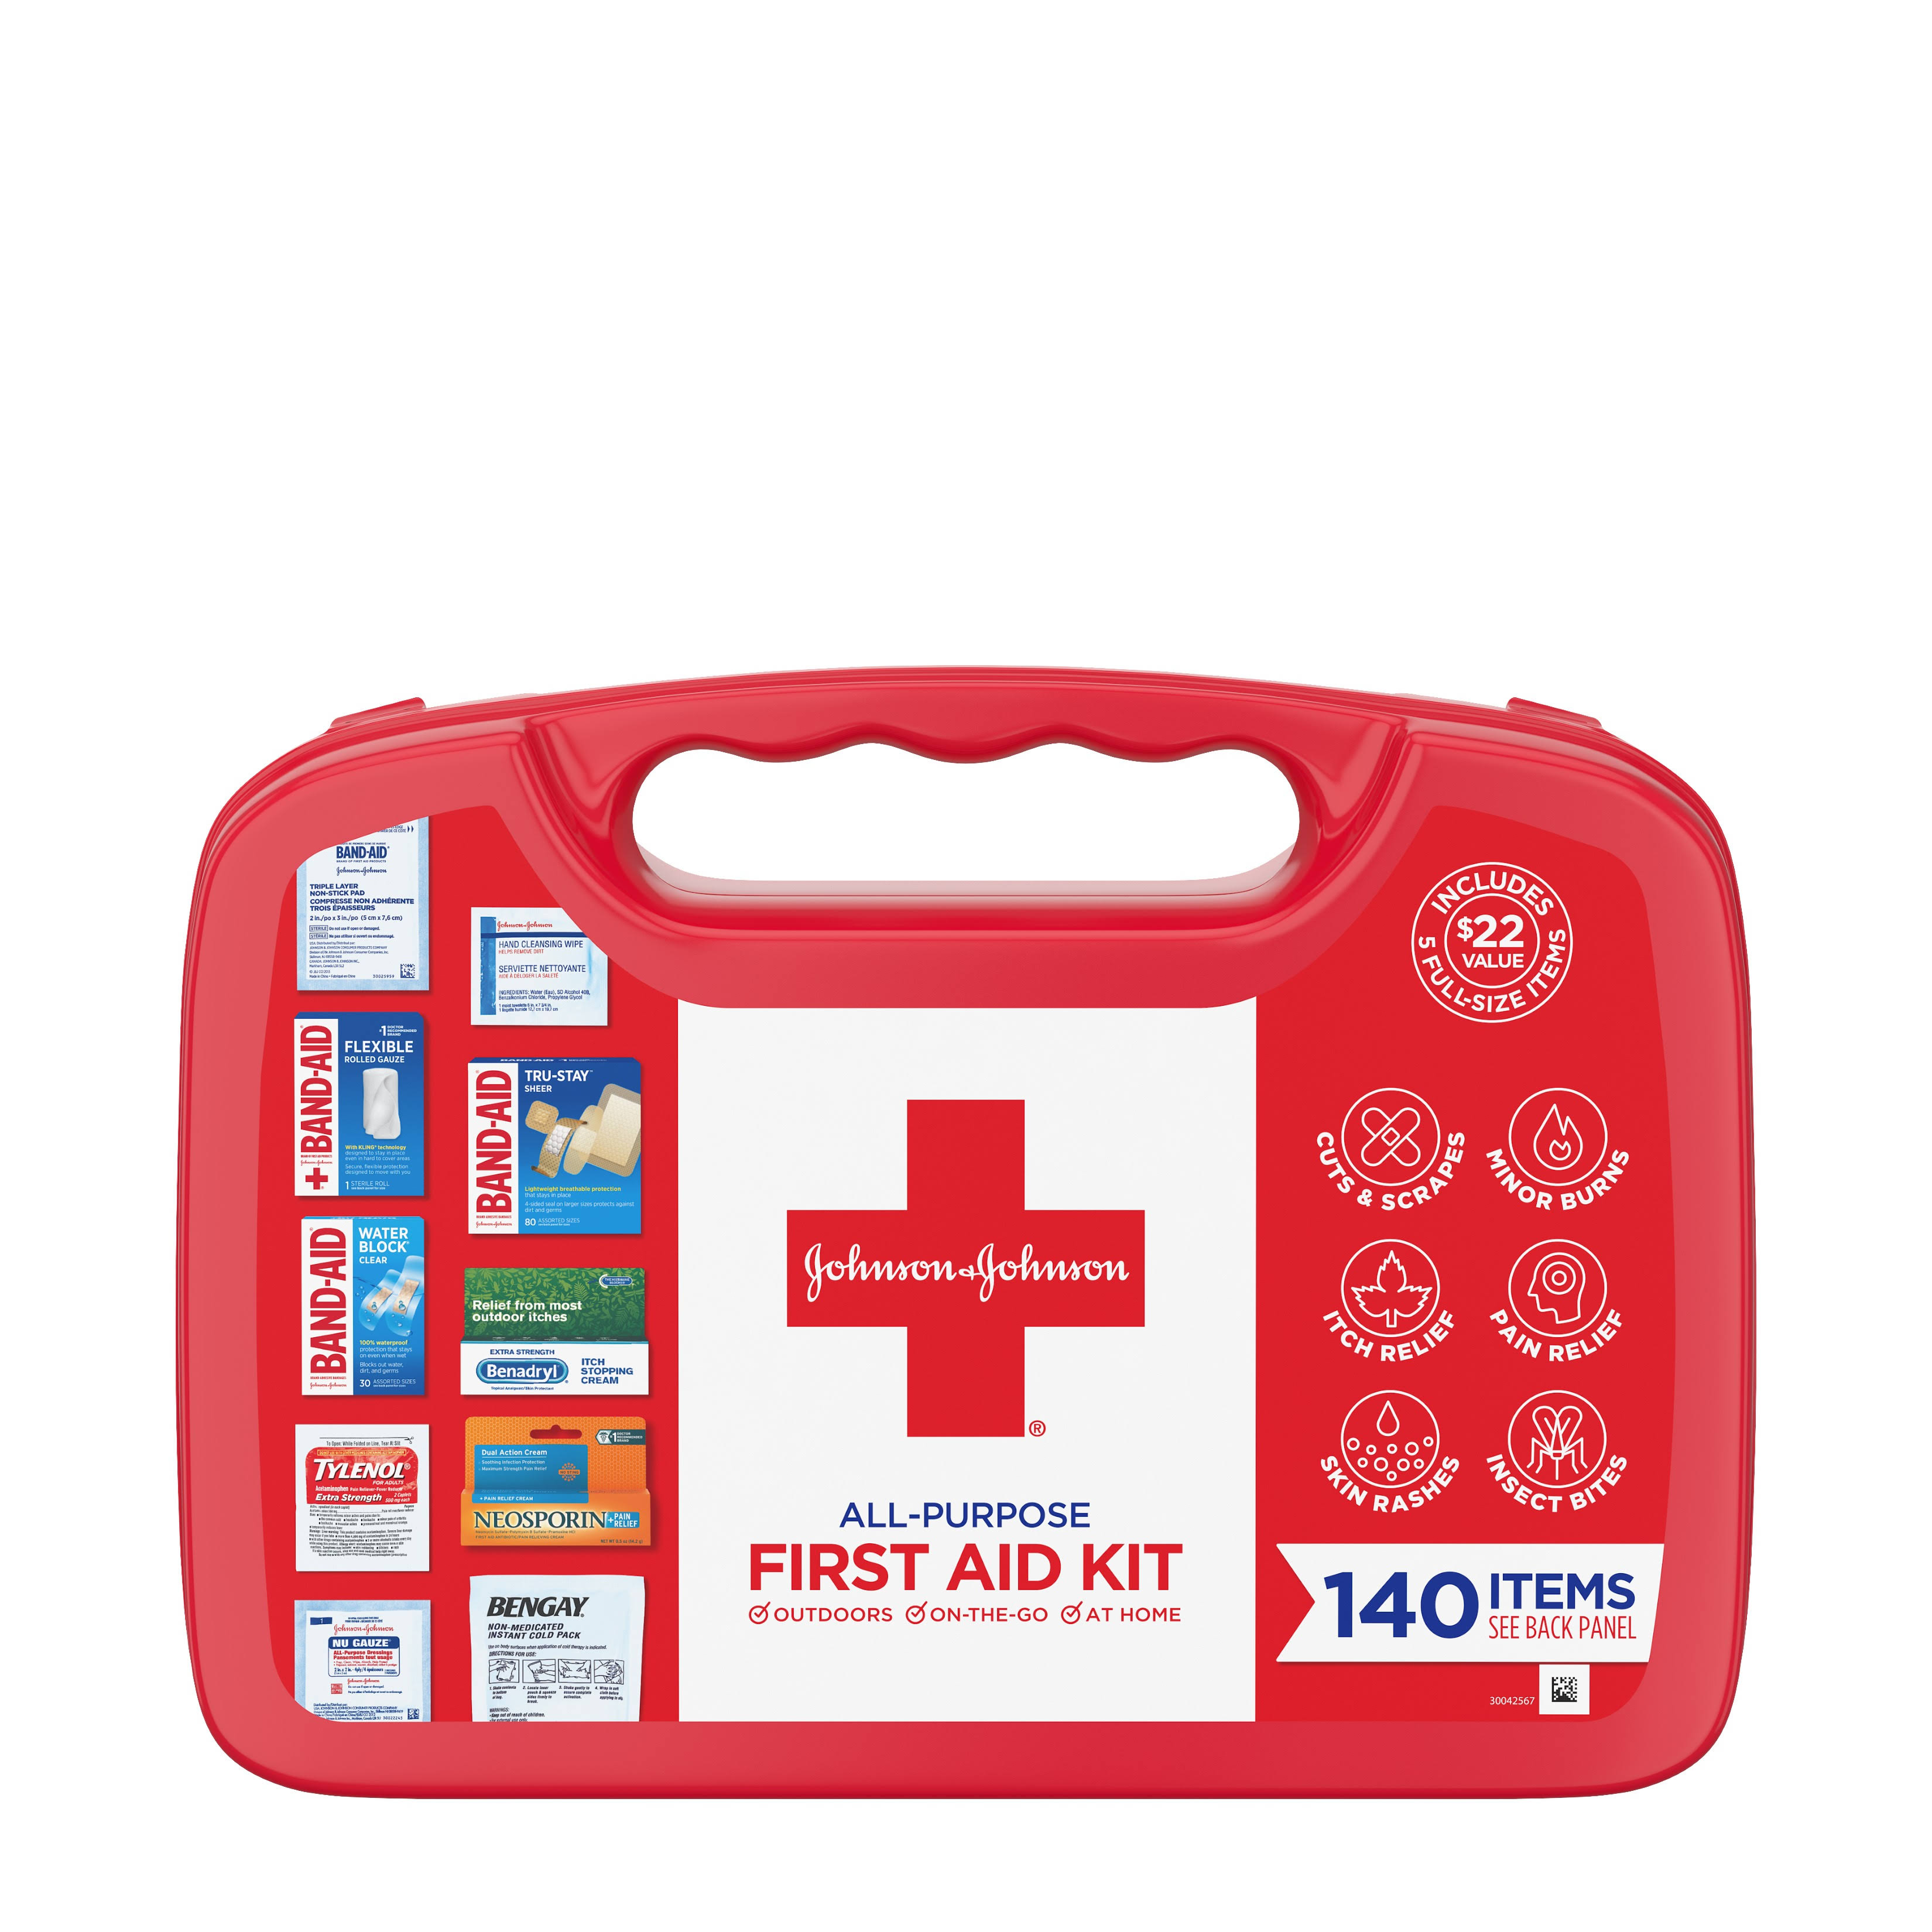 Johnson & Johnson All Purpose First Aid Kit - 140 Items